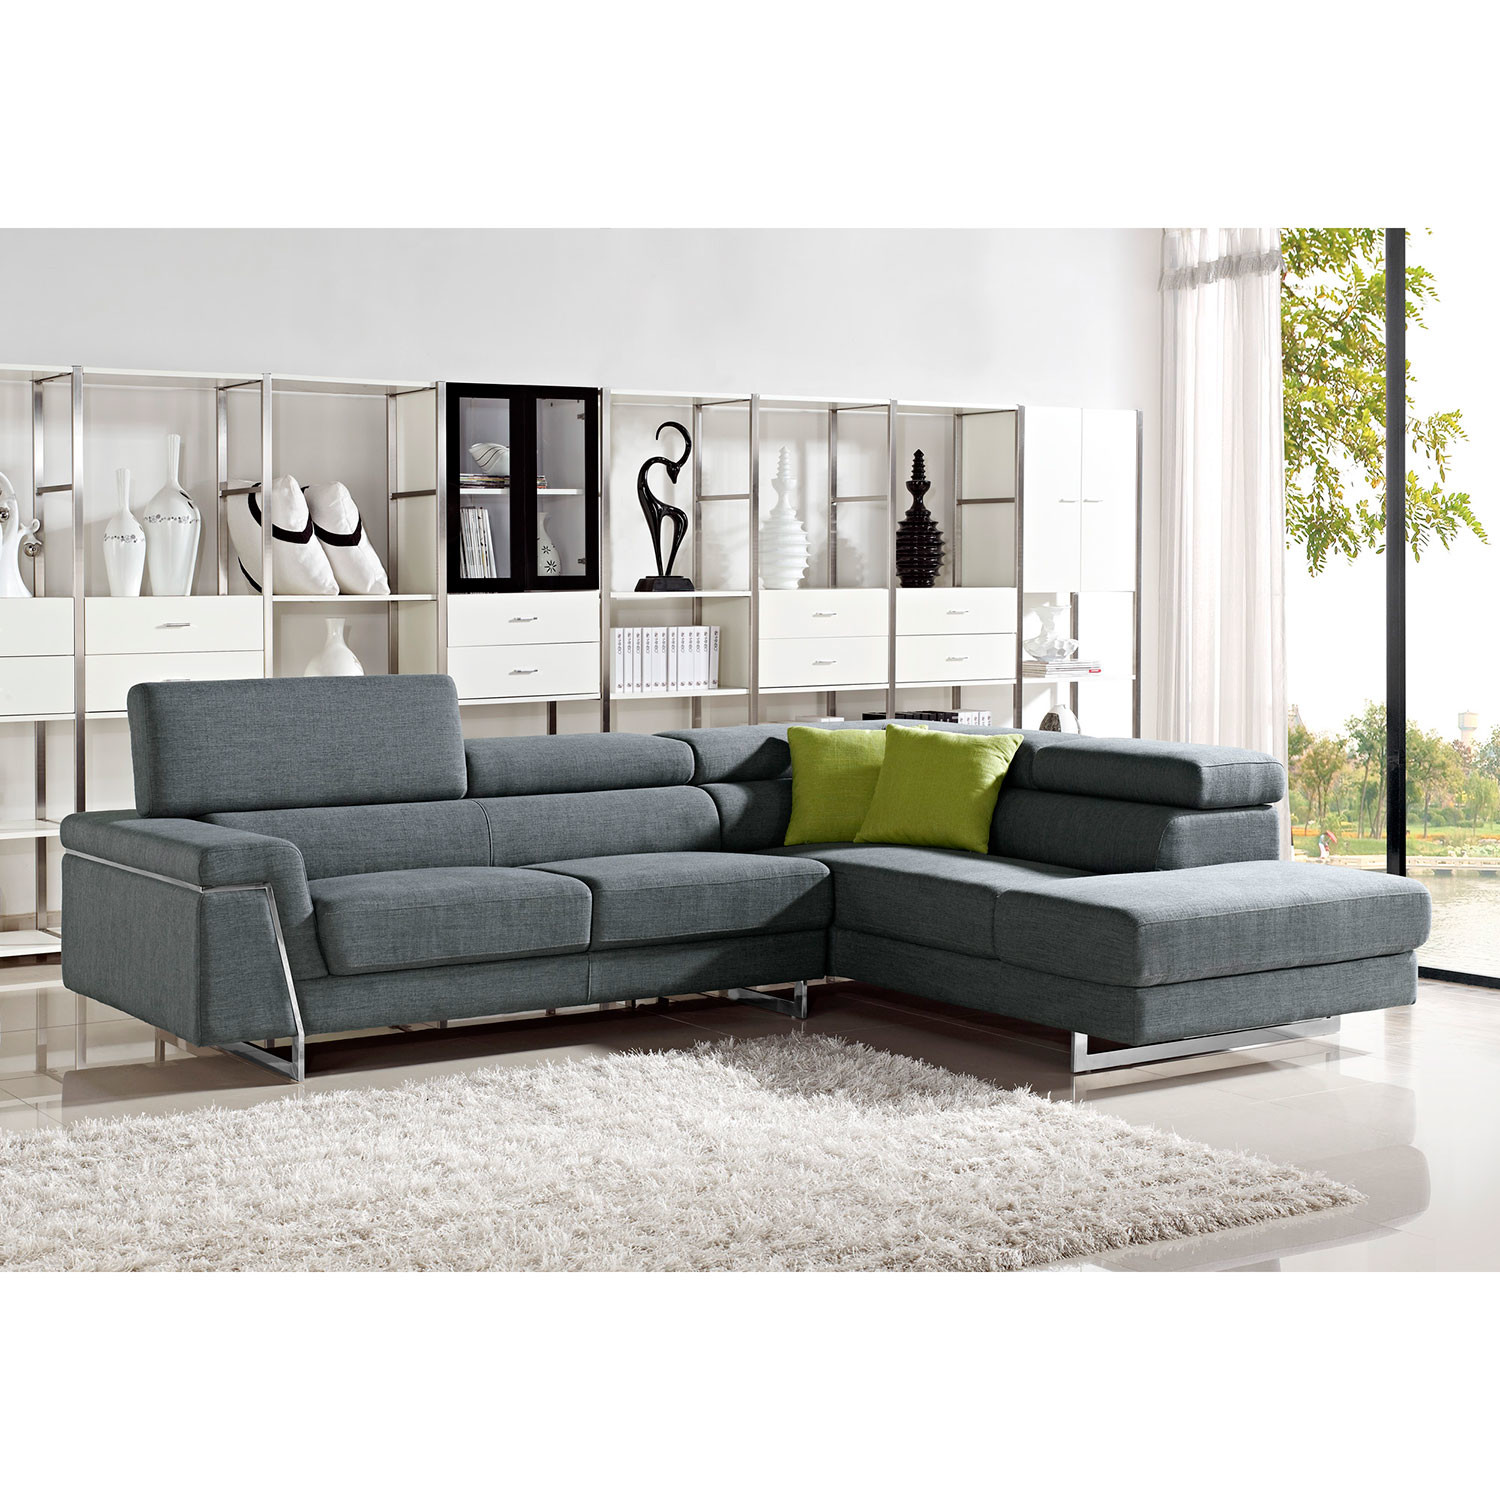 Contemporary Sectional: Divani Casa Darby Modern Fabric Sectional Sofa Set